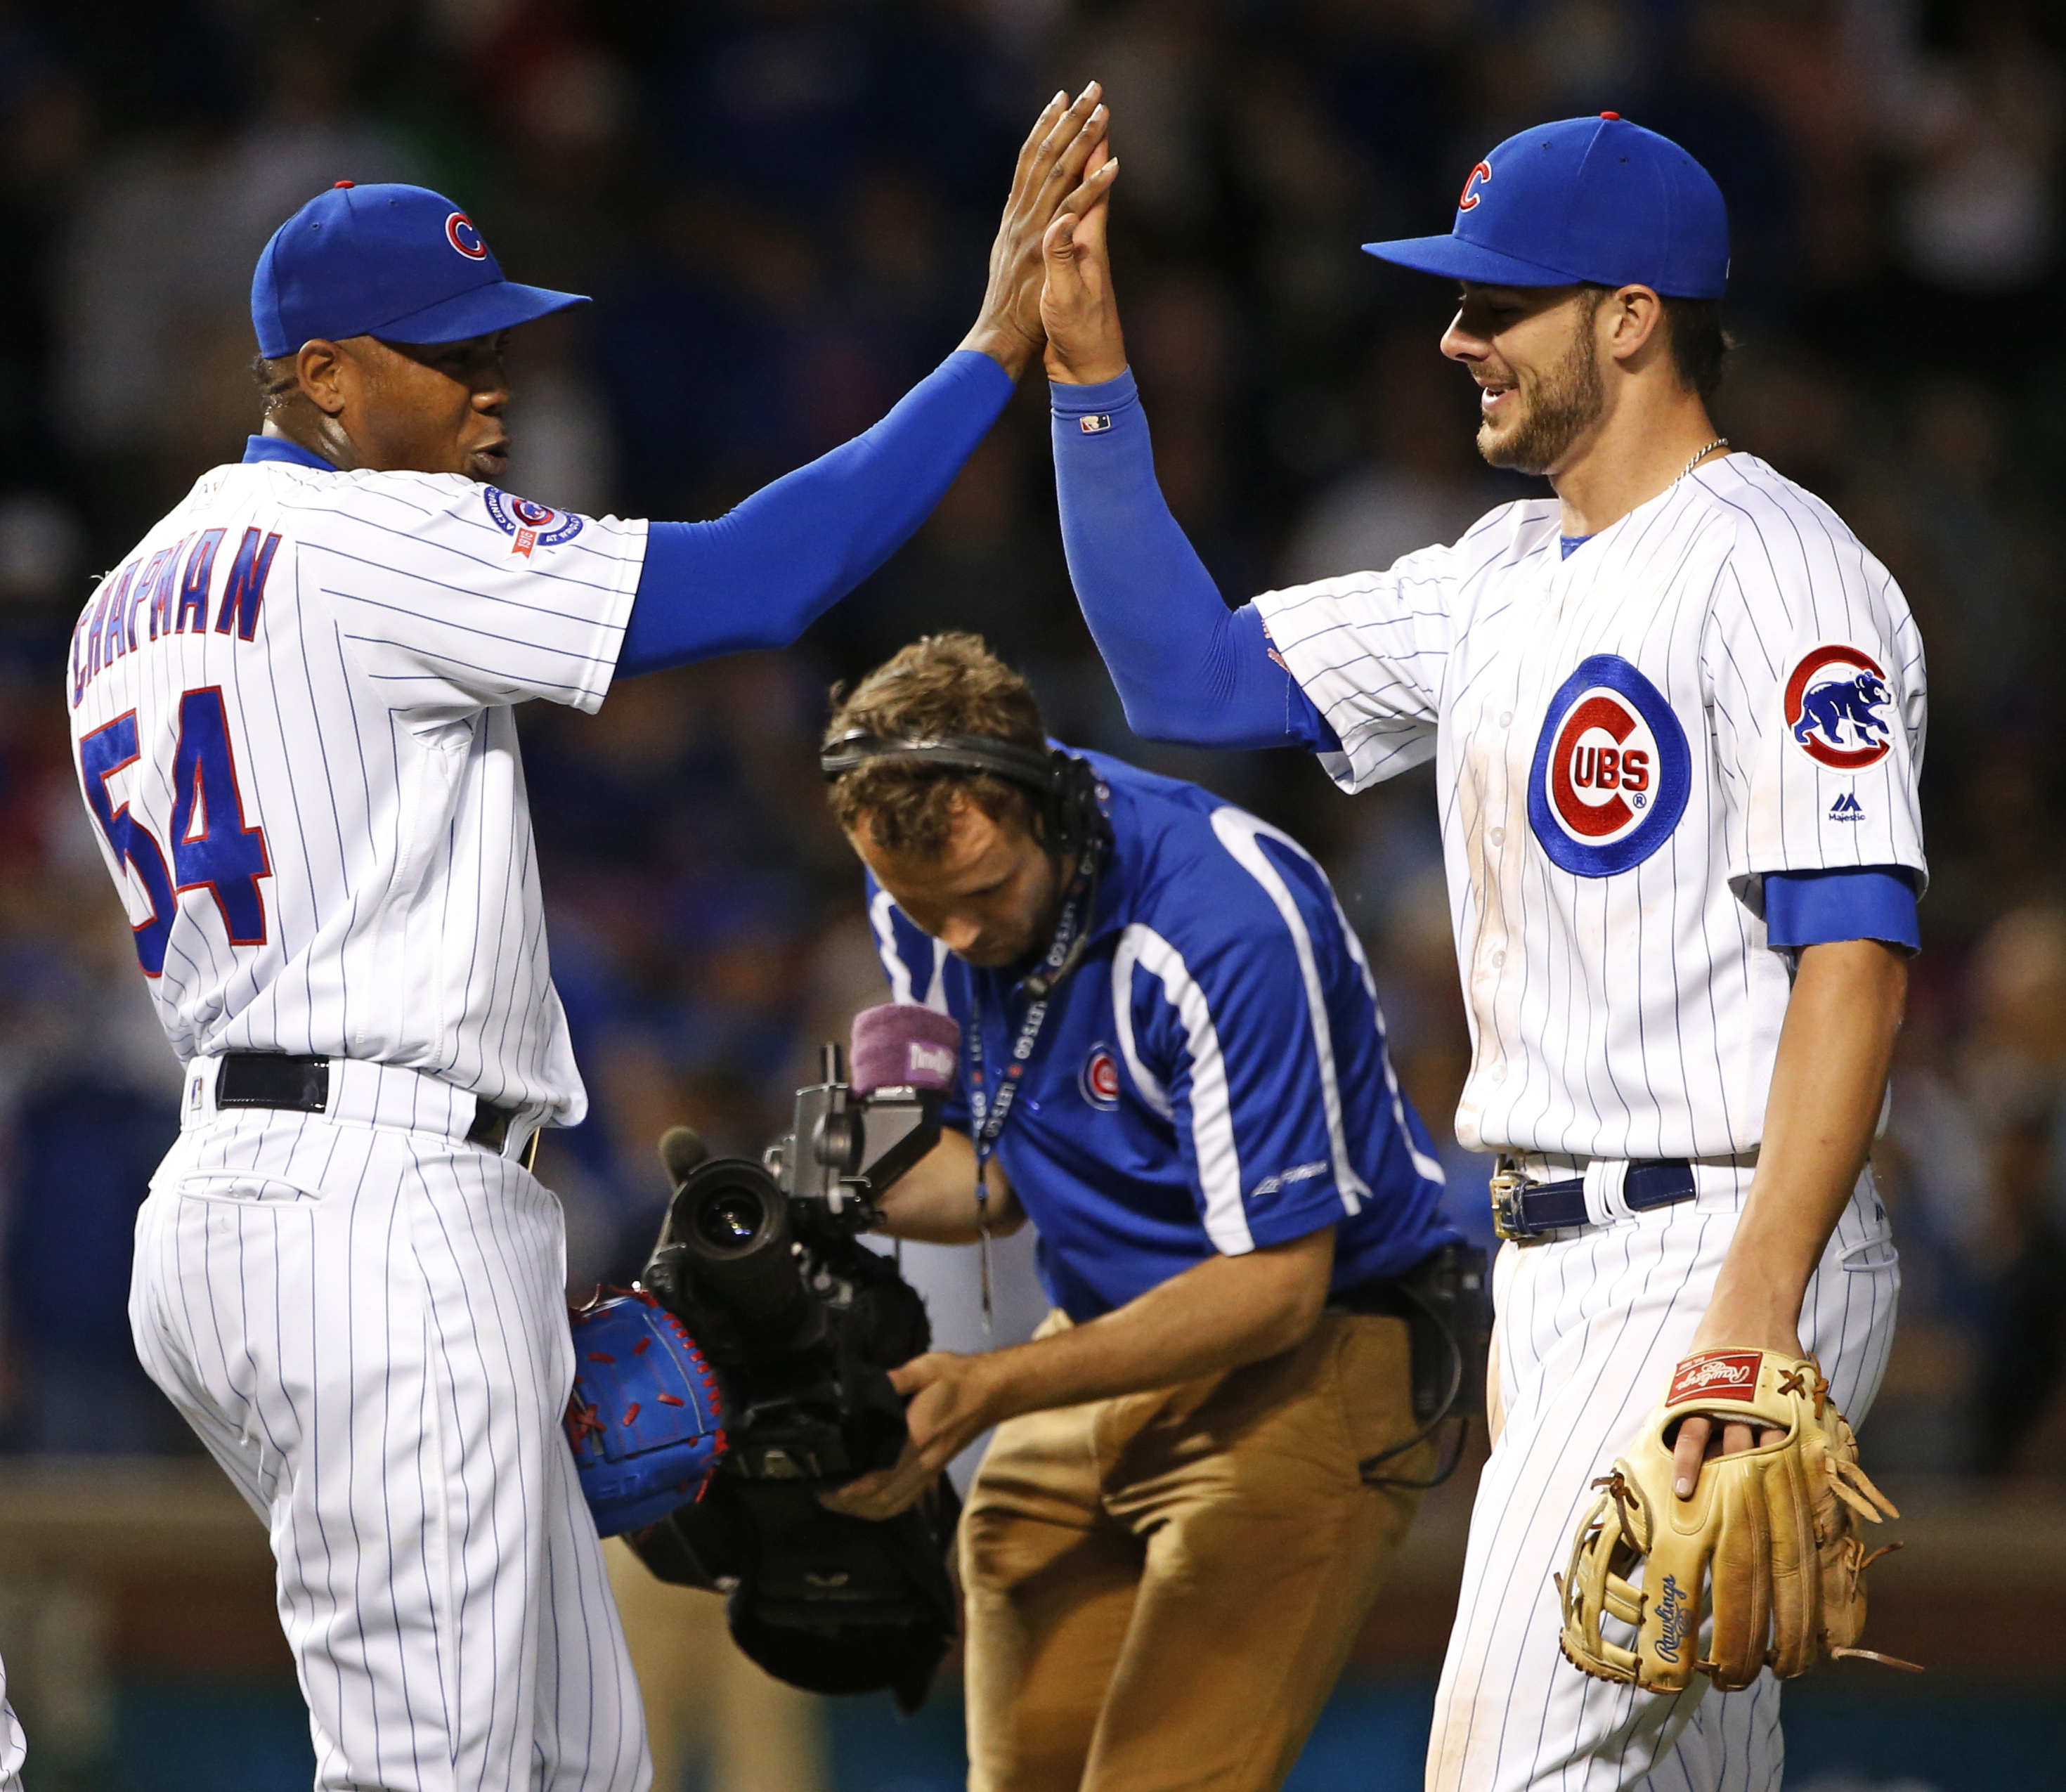 Chicago Cubs closer Aroldis Chapman, left, celebrates with Kris Bryant after the Cubs defeated the Pittsburgh Pirates 6-5 in a baseball game Wednesday, Aug. 31, 2016, in Chicago. (AP Photo/Nam Y. Huh)